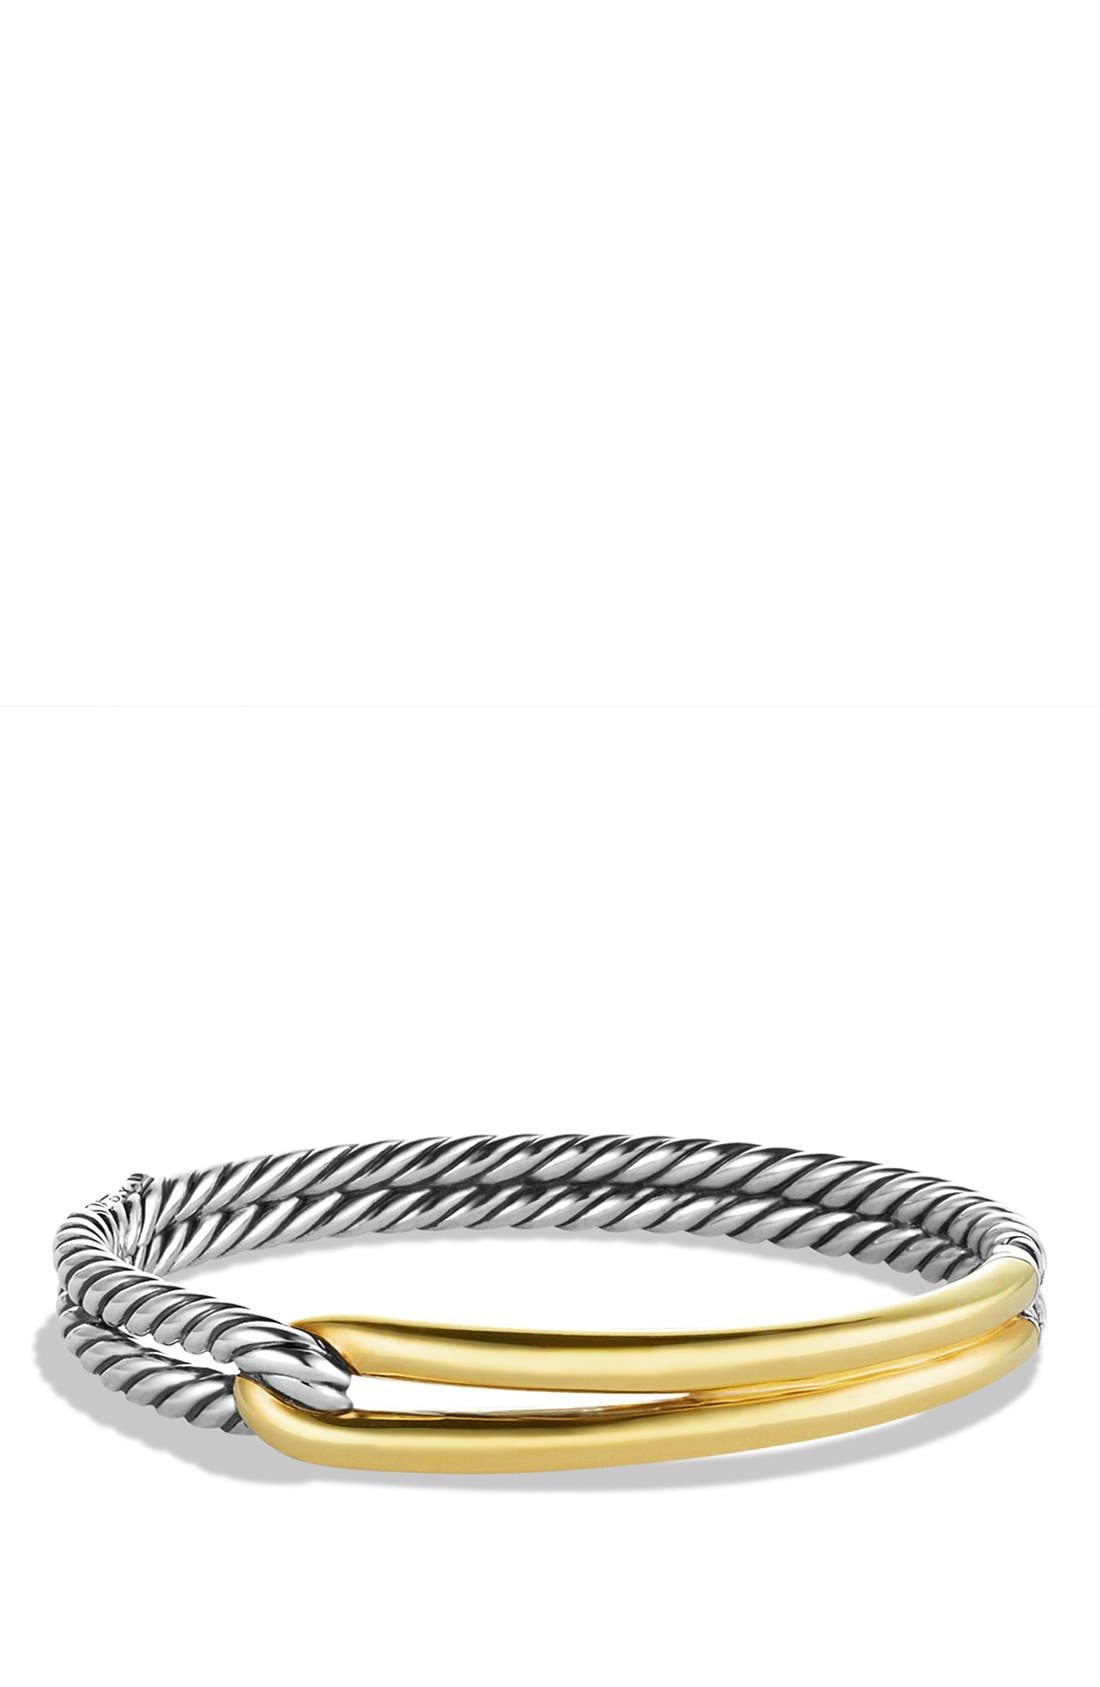 'Labyrinth' Single-Loop Bracelet with Gold,                             Main thumbnail 1, color,                             040